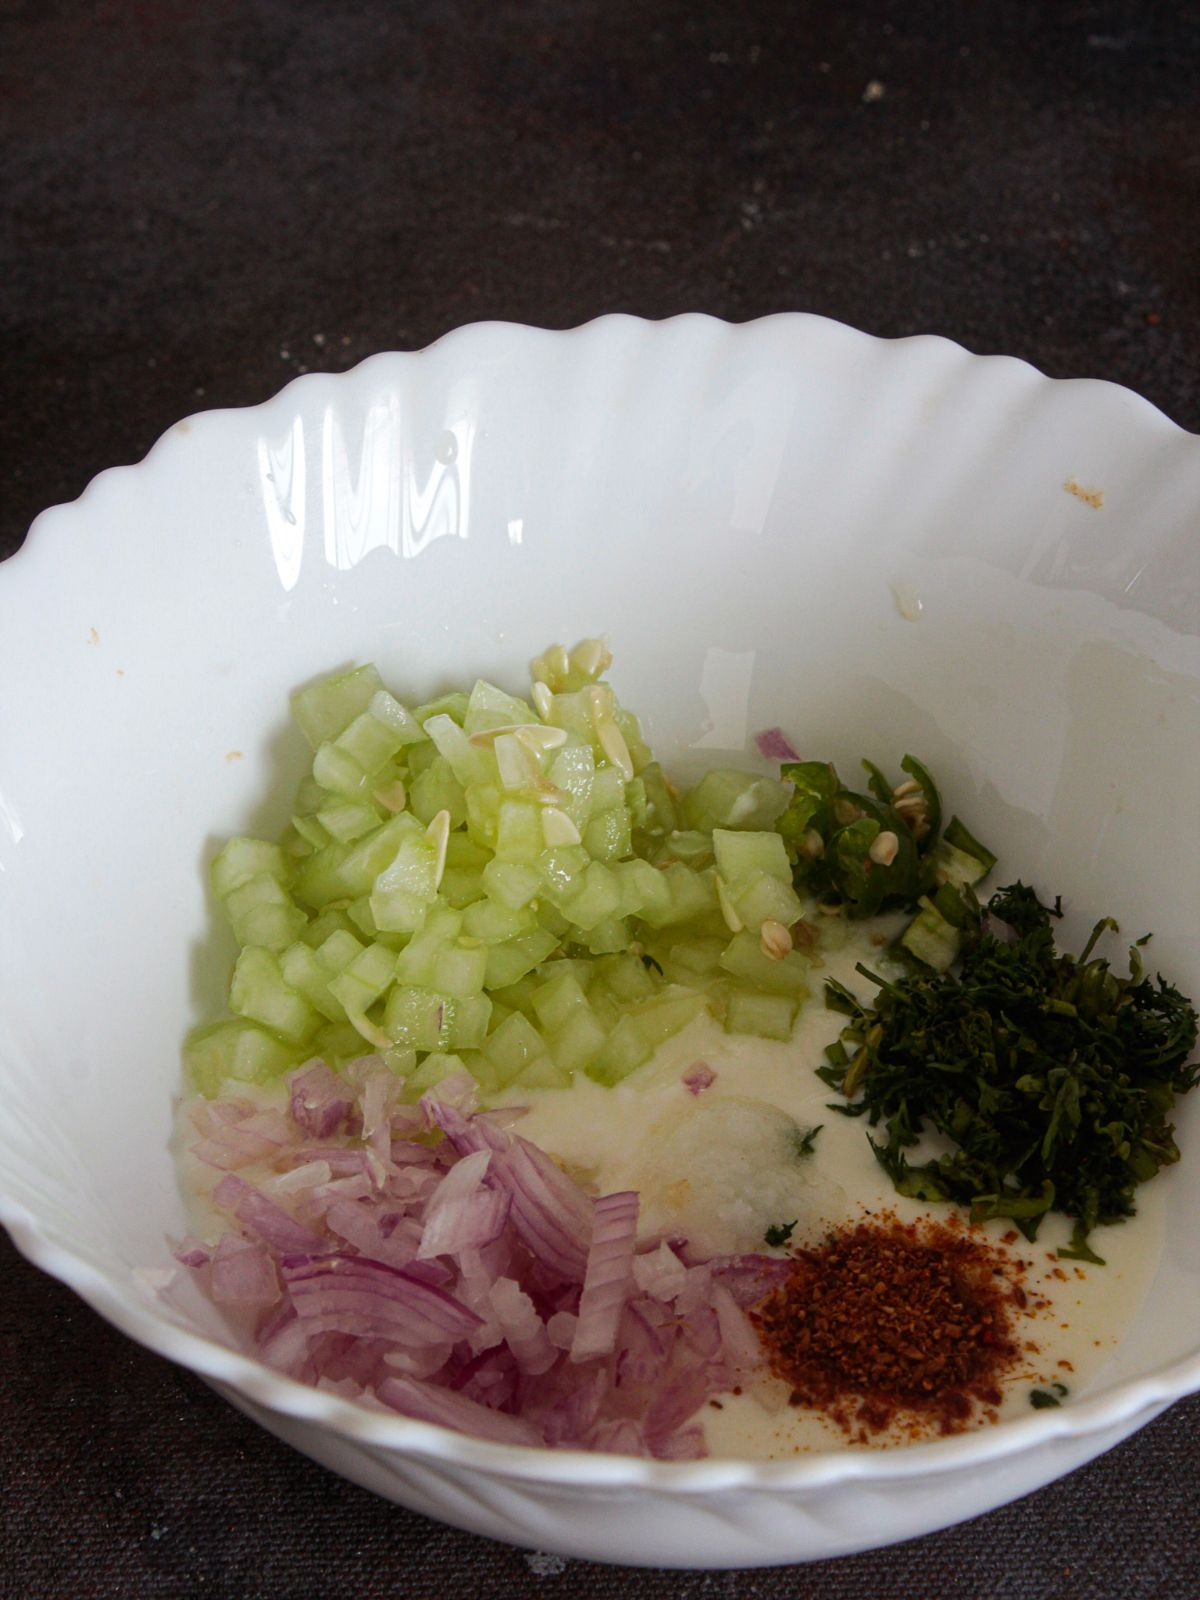 White bowl filled with yogurt cucumbers onions and herbs